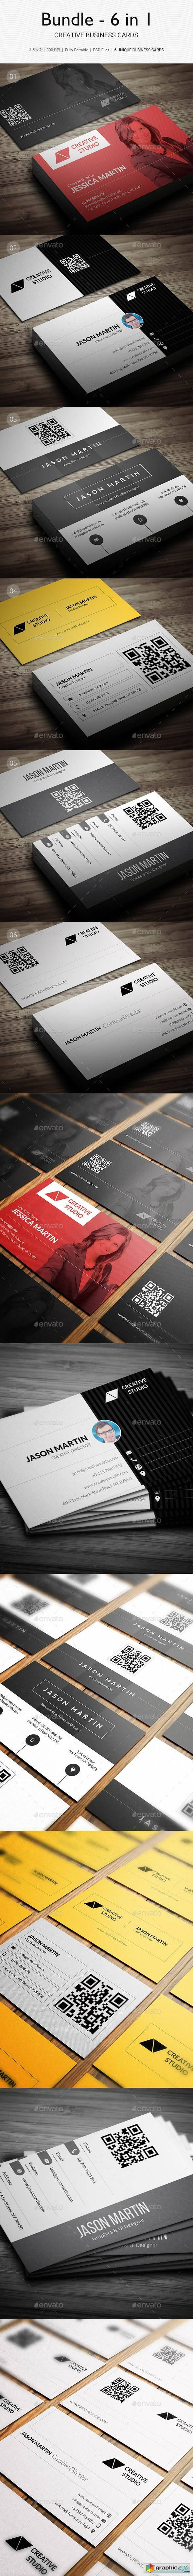 Bundle - 6 in 1 - Creative Business Cards - B29